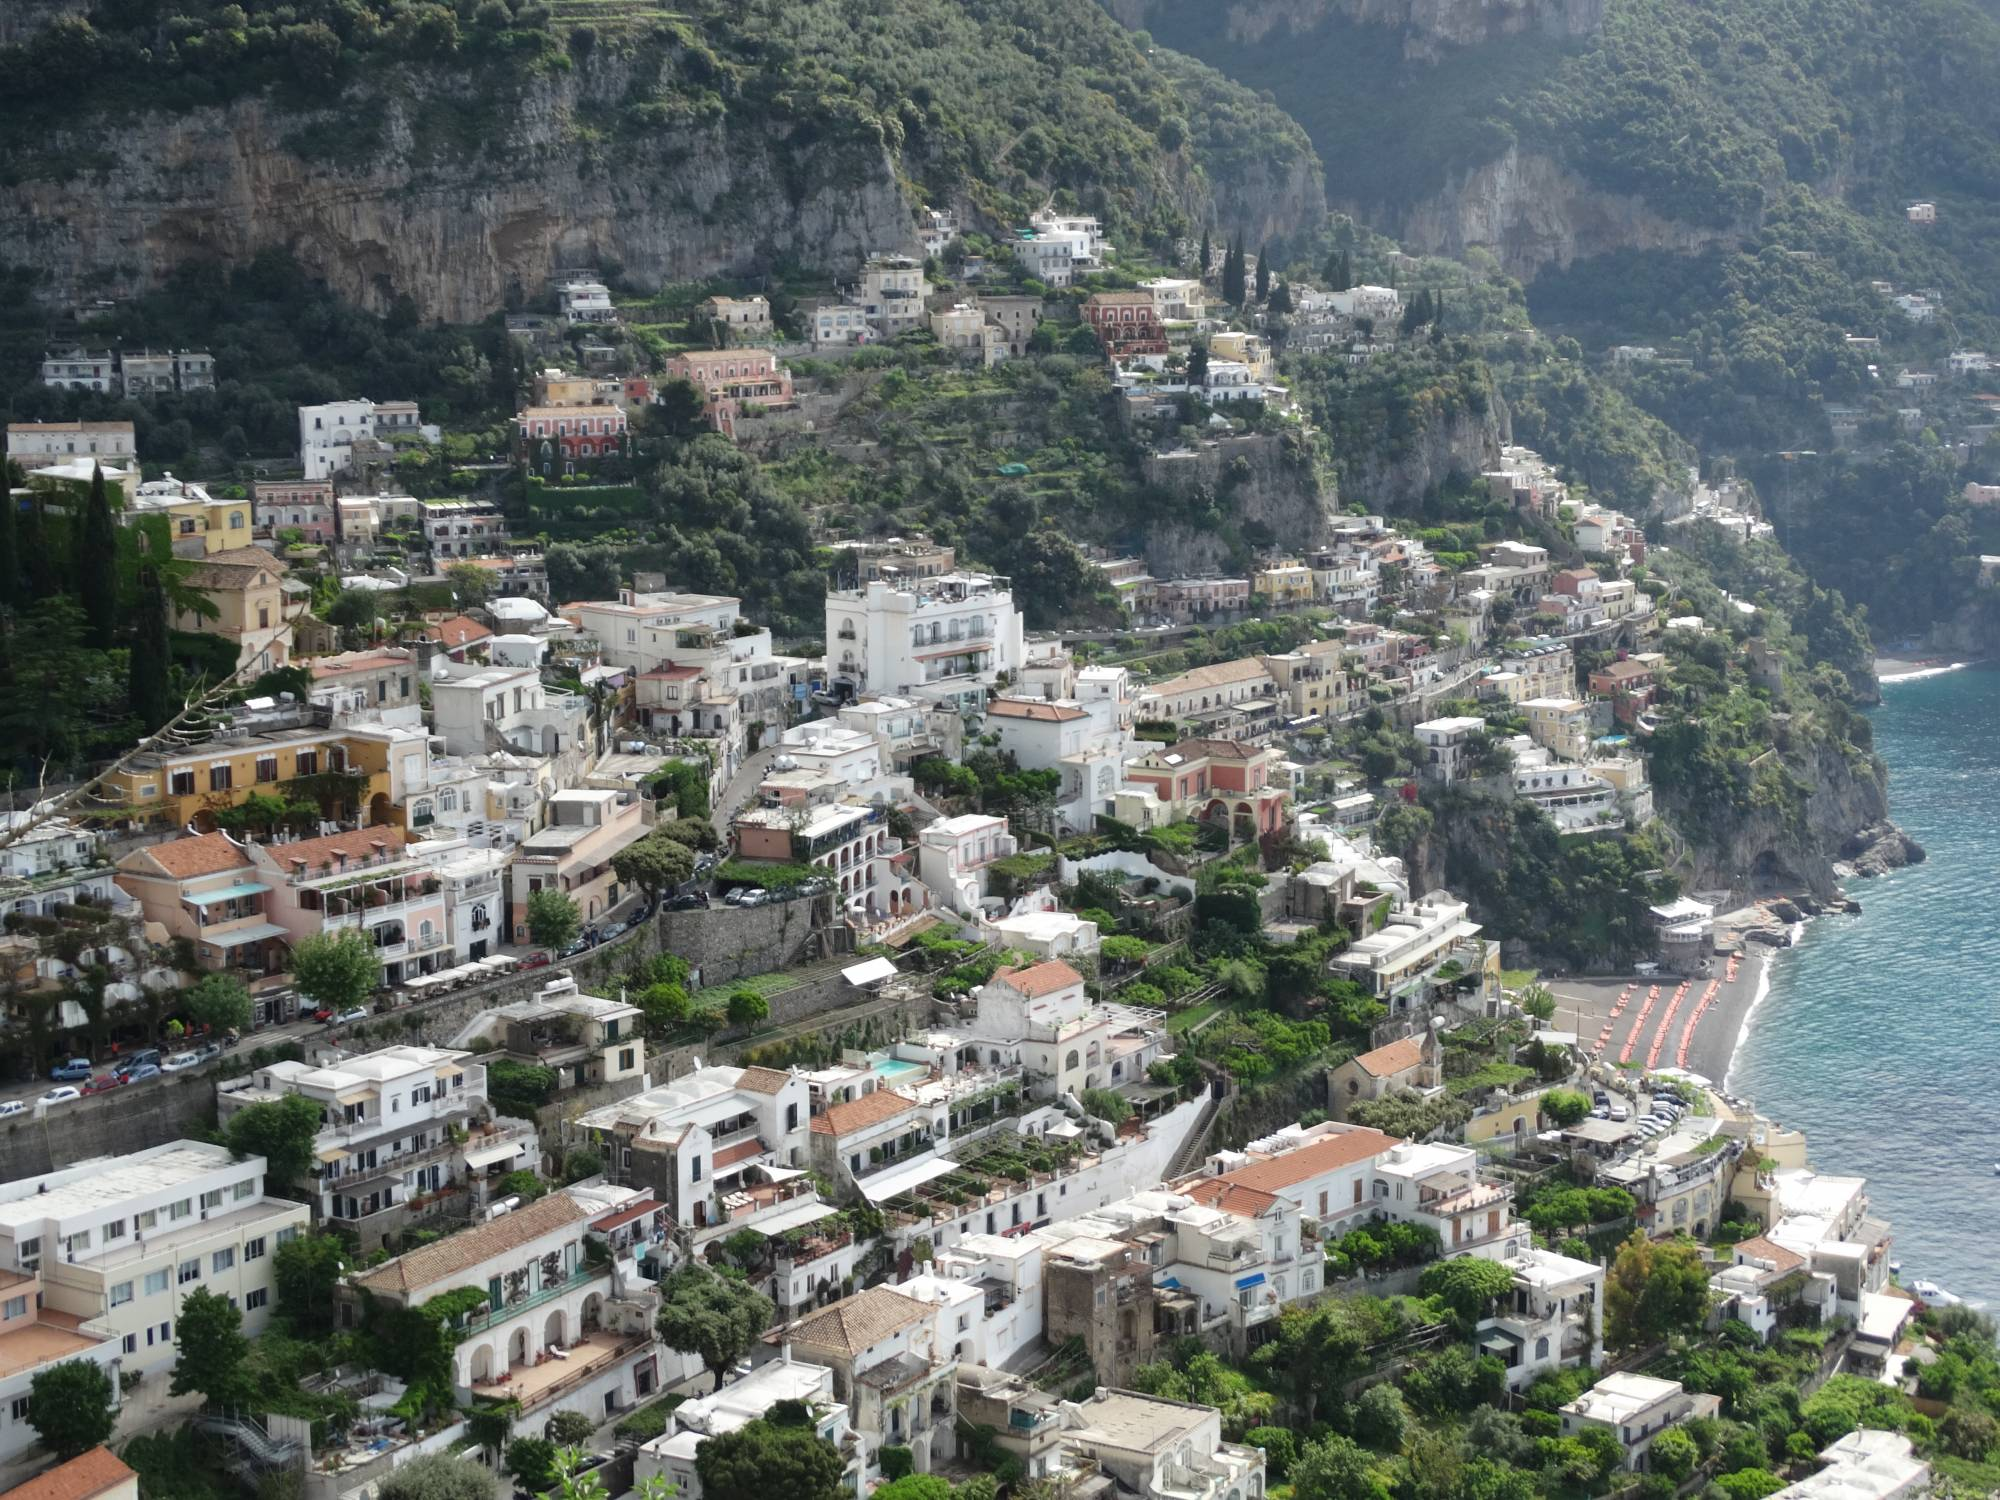 Positano, Amalfi coast, Italy photo